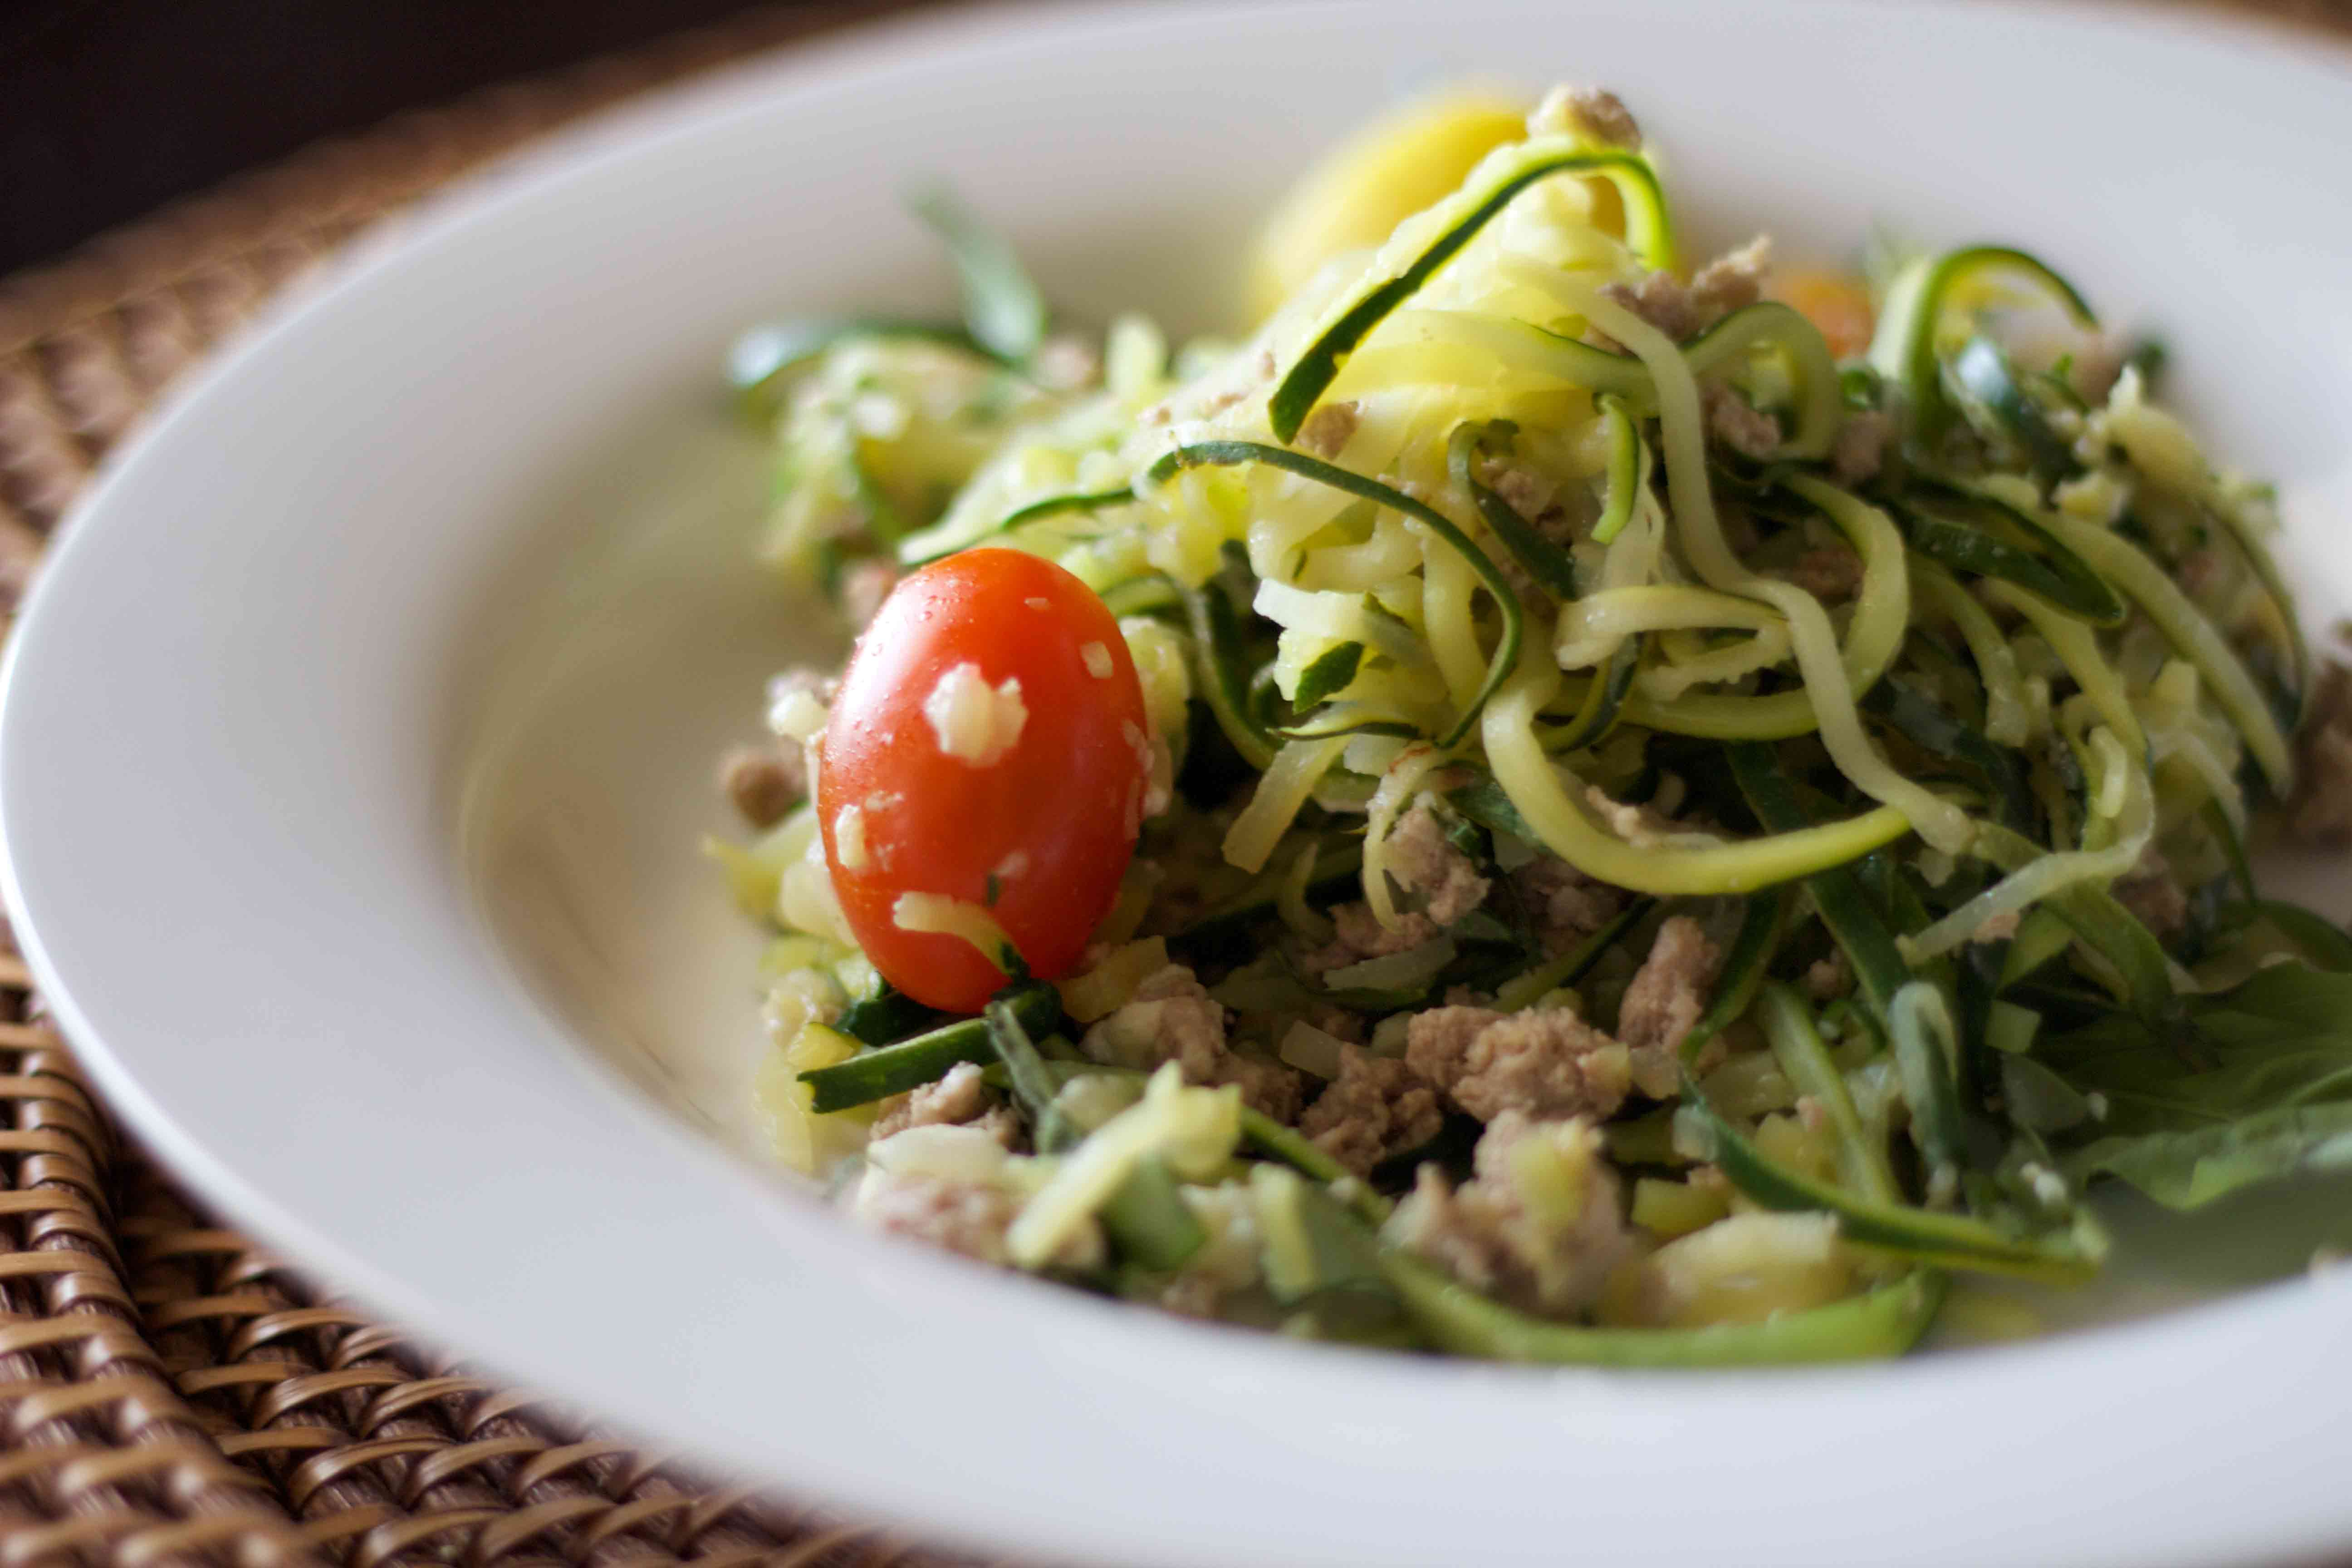 lemon zucchini pasta. low carb and bariatric friendly!